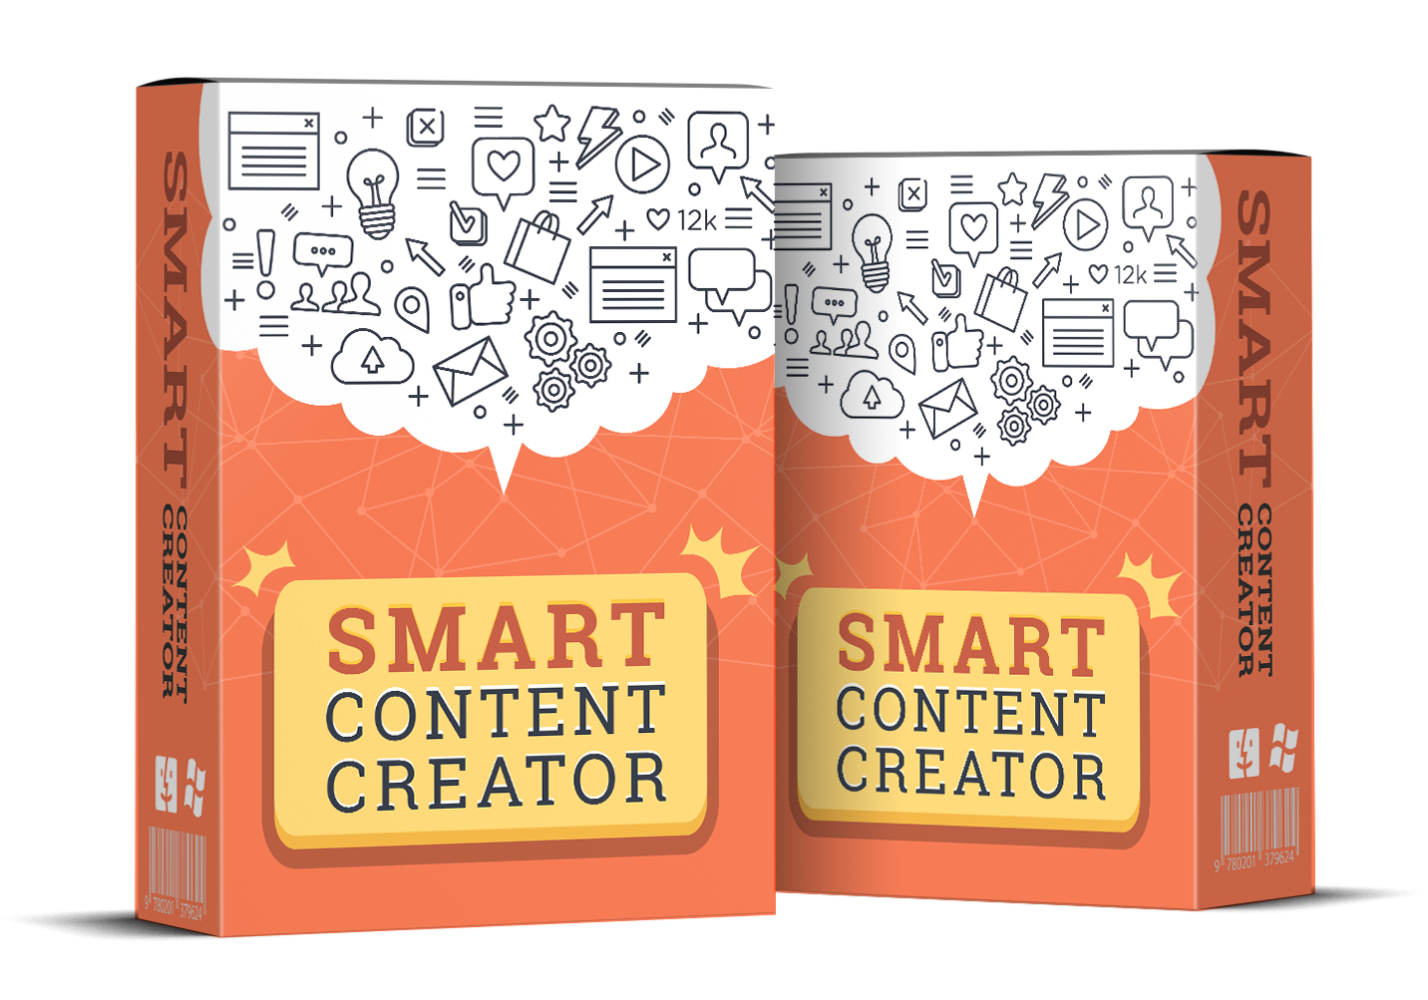 AnimationStudio - Smart Content Creator